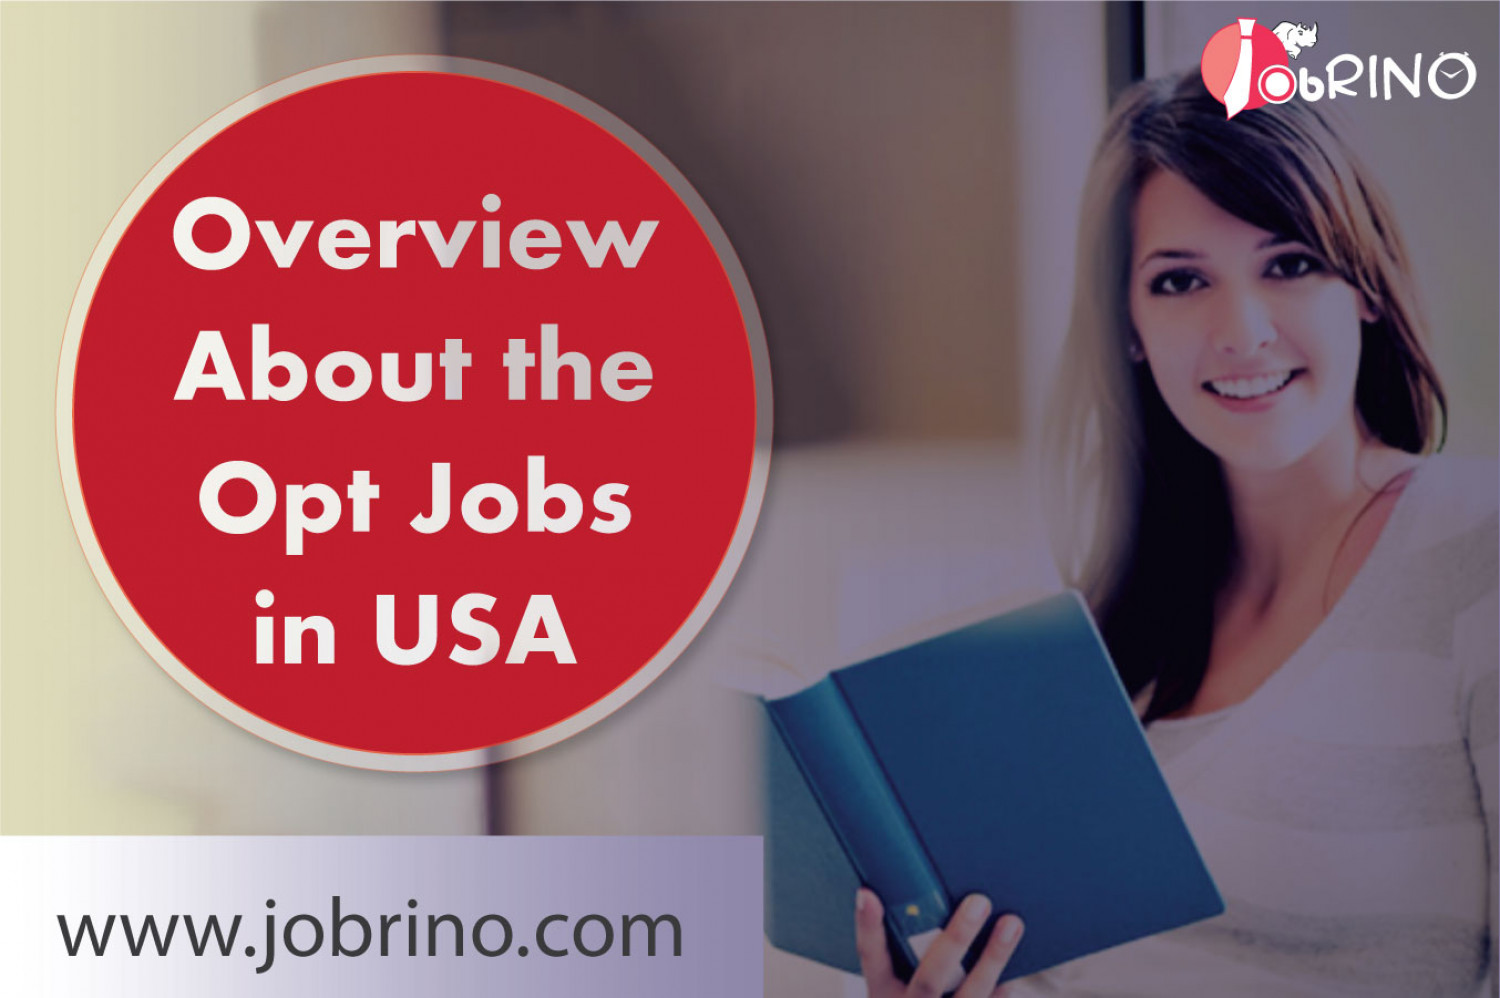 Find the overview of the opt jobs in USA - JobRino.  Infographic